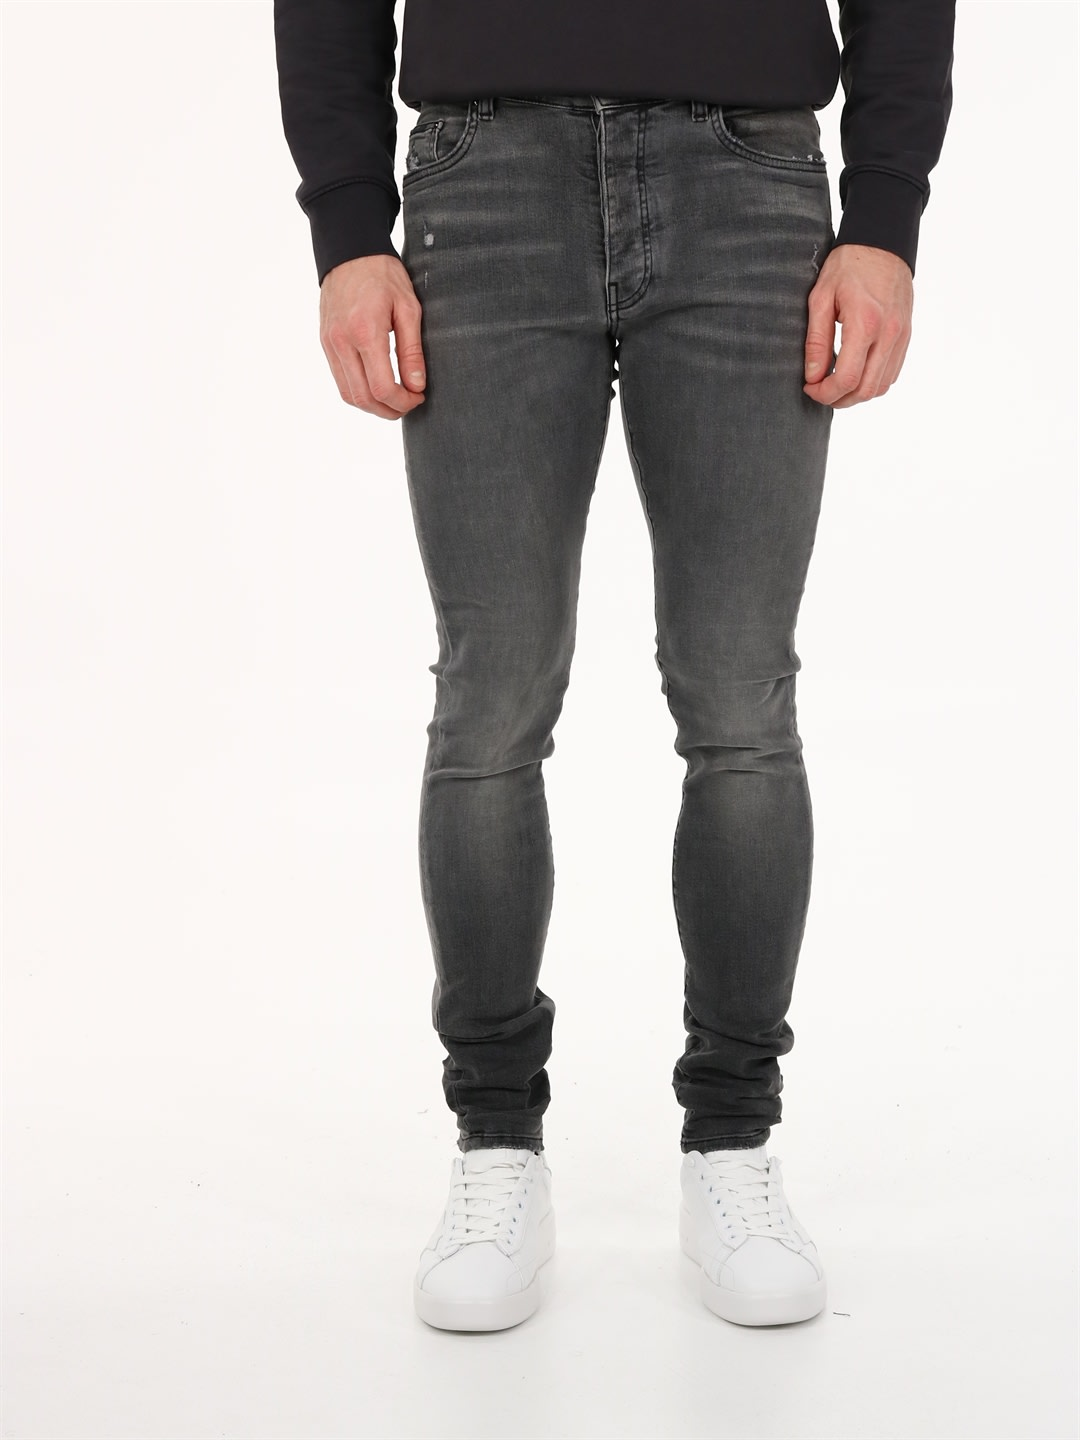 Amiri Denims SLIM JEANS IN GRAY DENIM